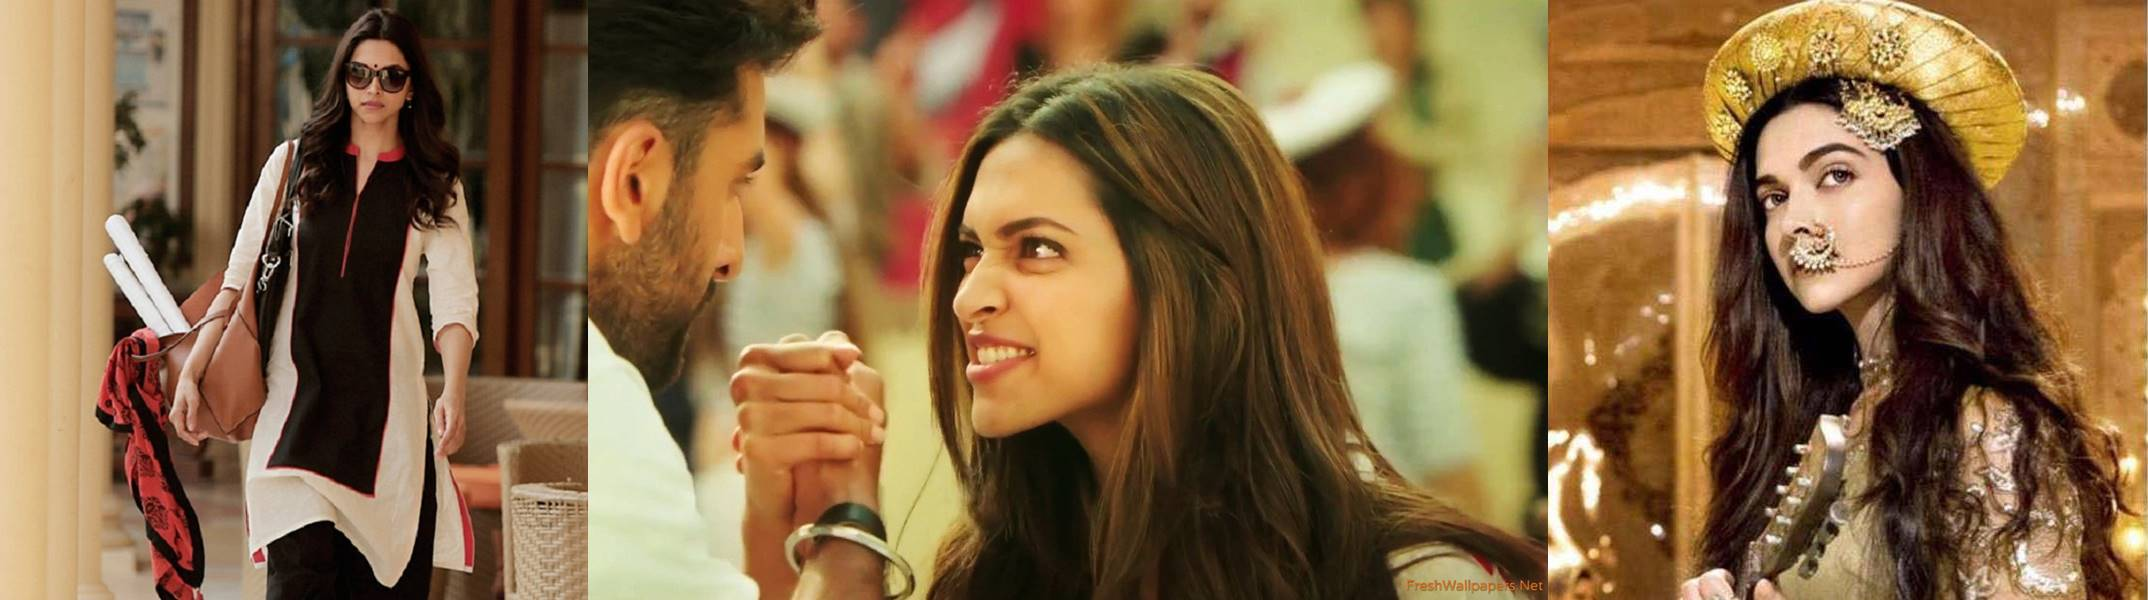 Deepika Padukone: The Queen of Bollywood rules 2015 with Piku, Tamasha and Bajirao Mastani